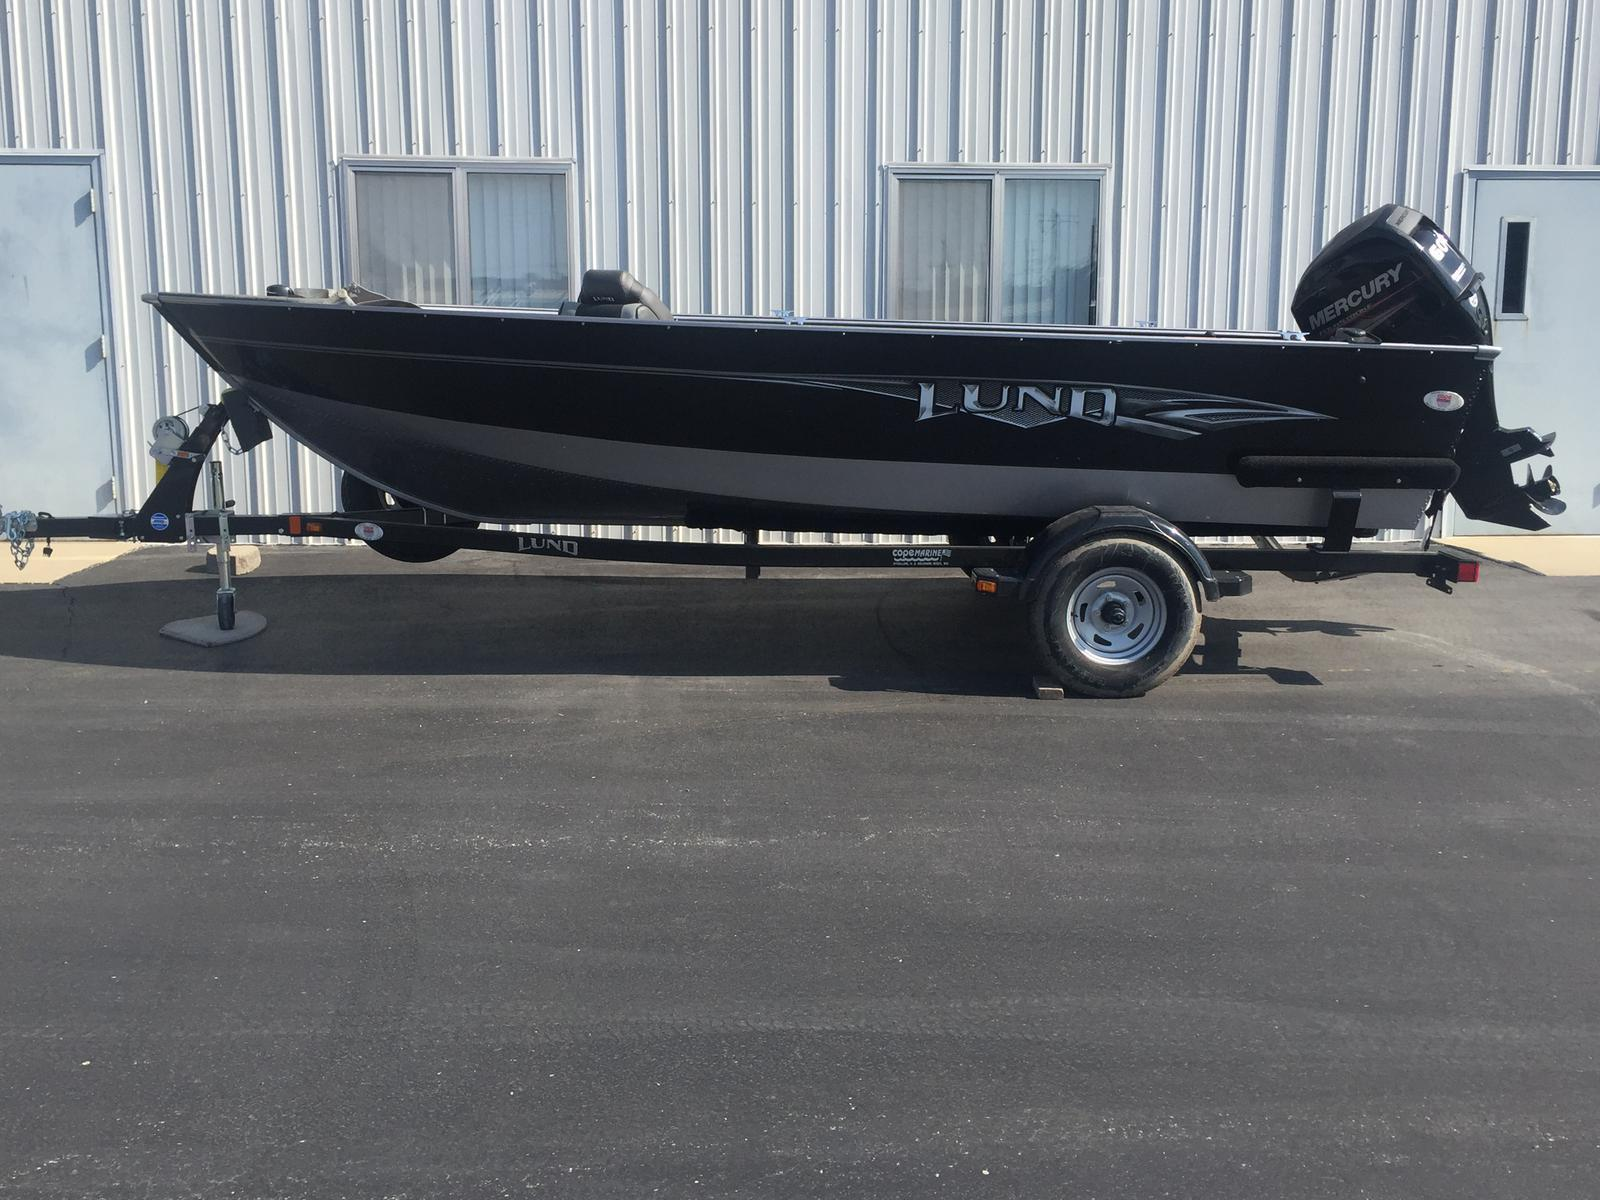 Lund 1650 rebel xl boats for sale for Used fishing boats for sale mn